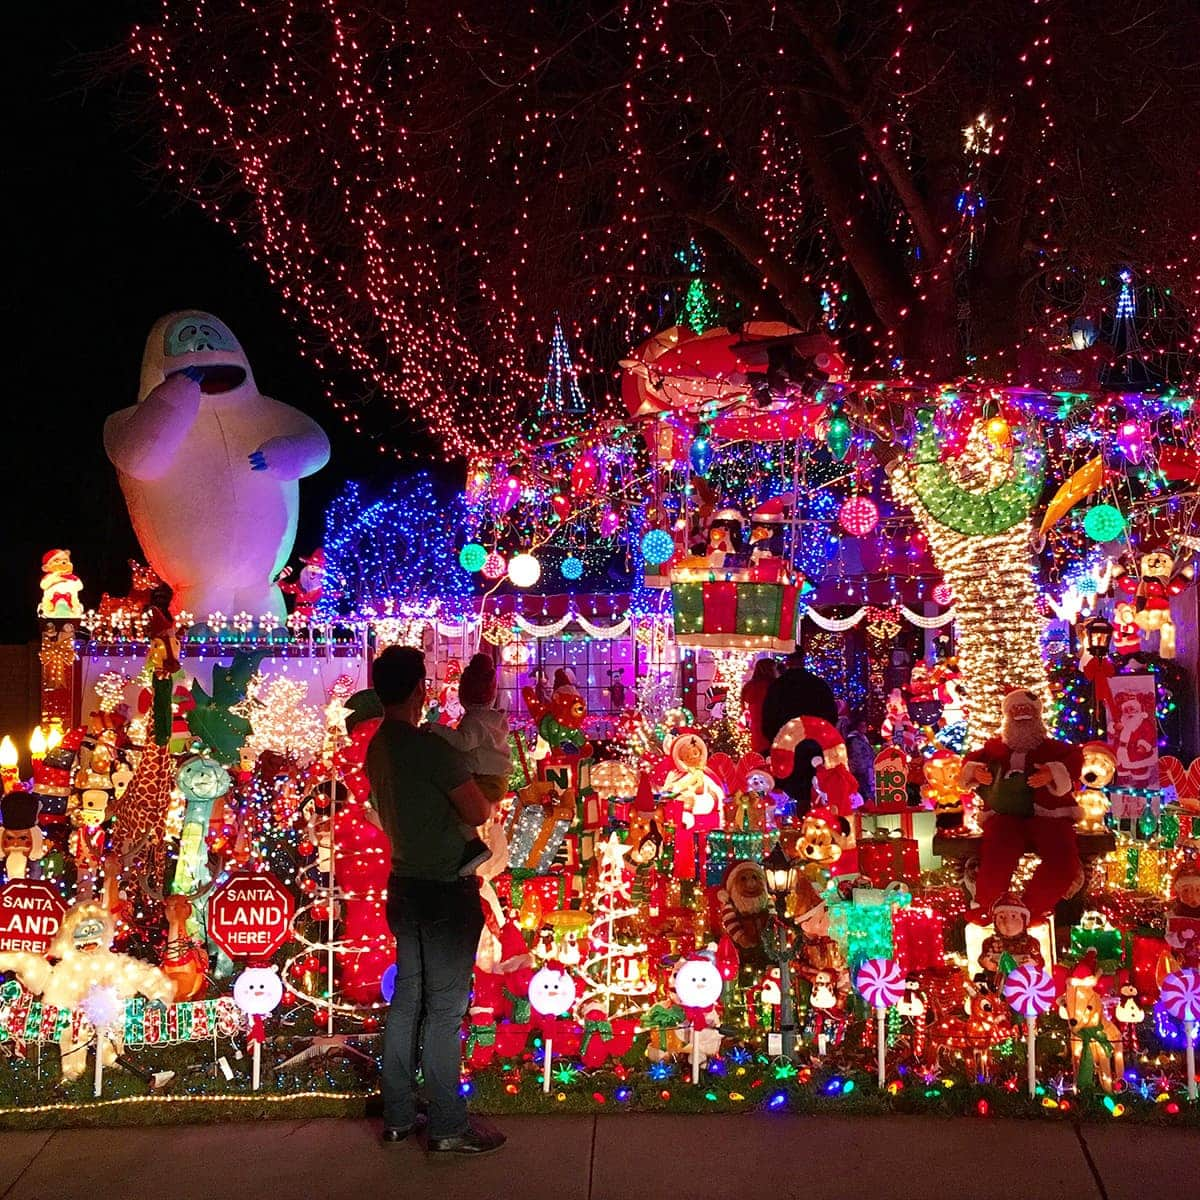 Dad and son with Christmas light display